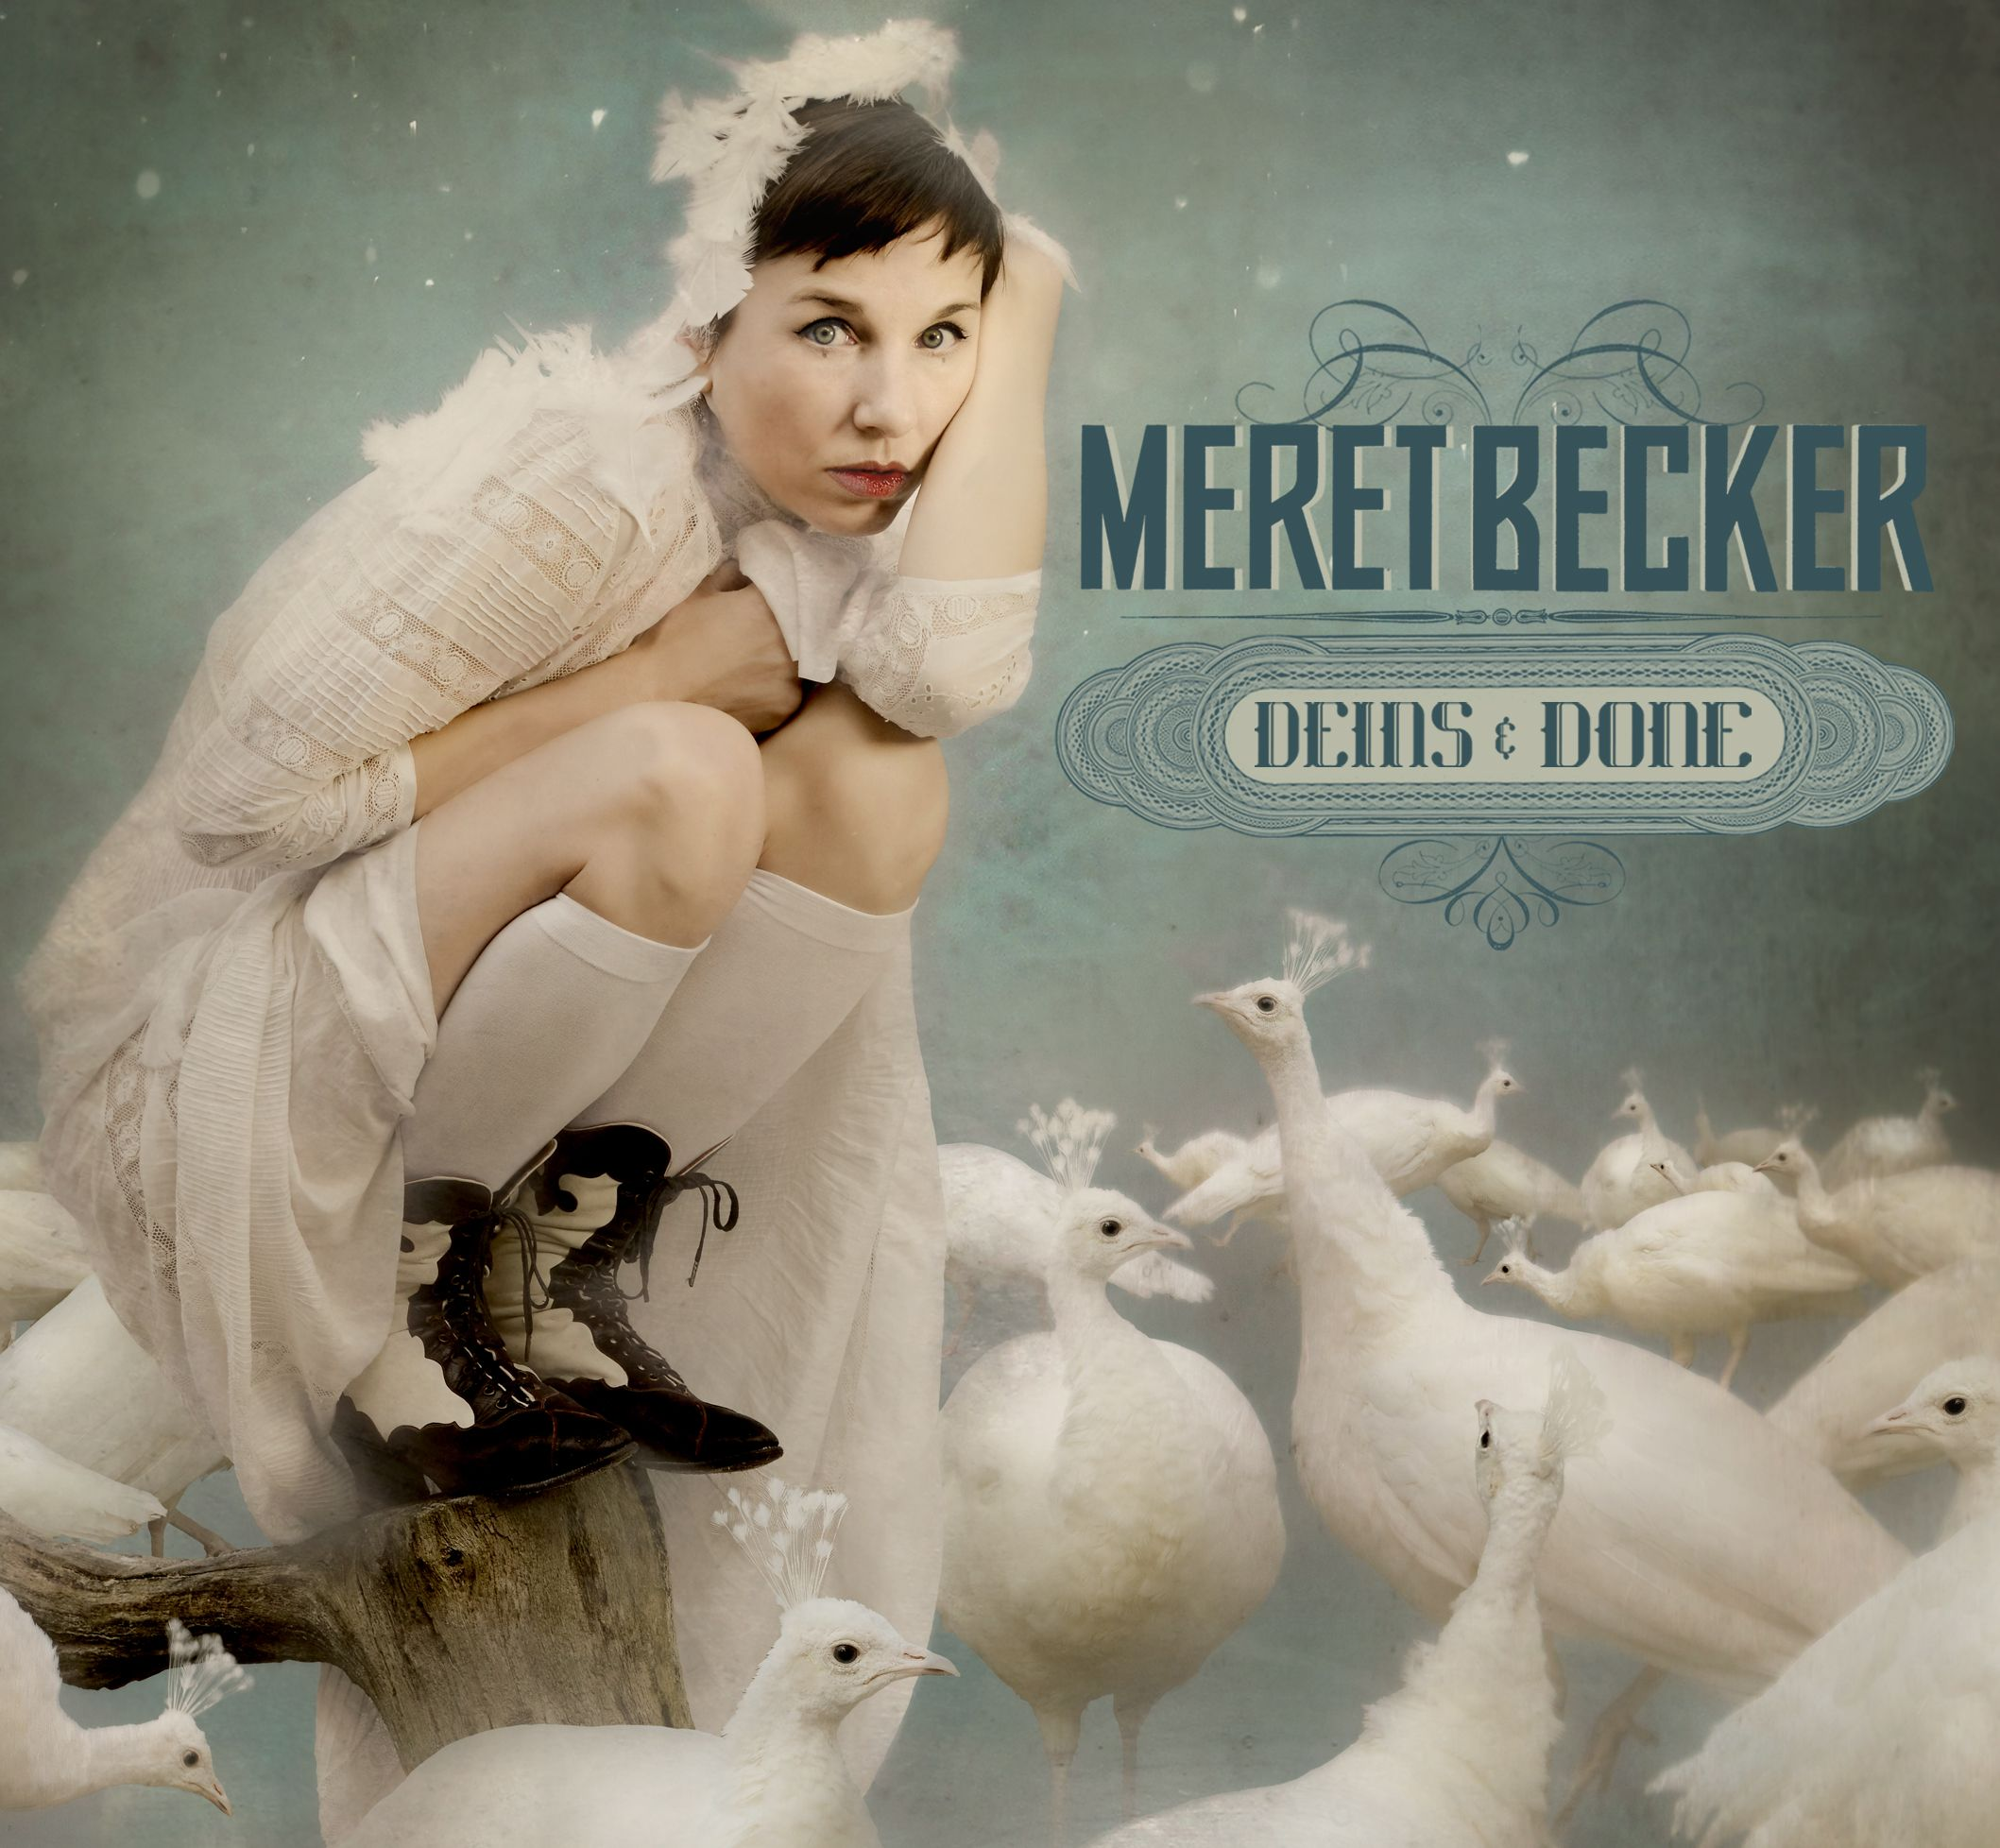 Meret Becker Deins & Done neues Album